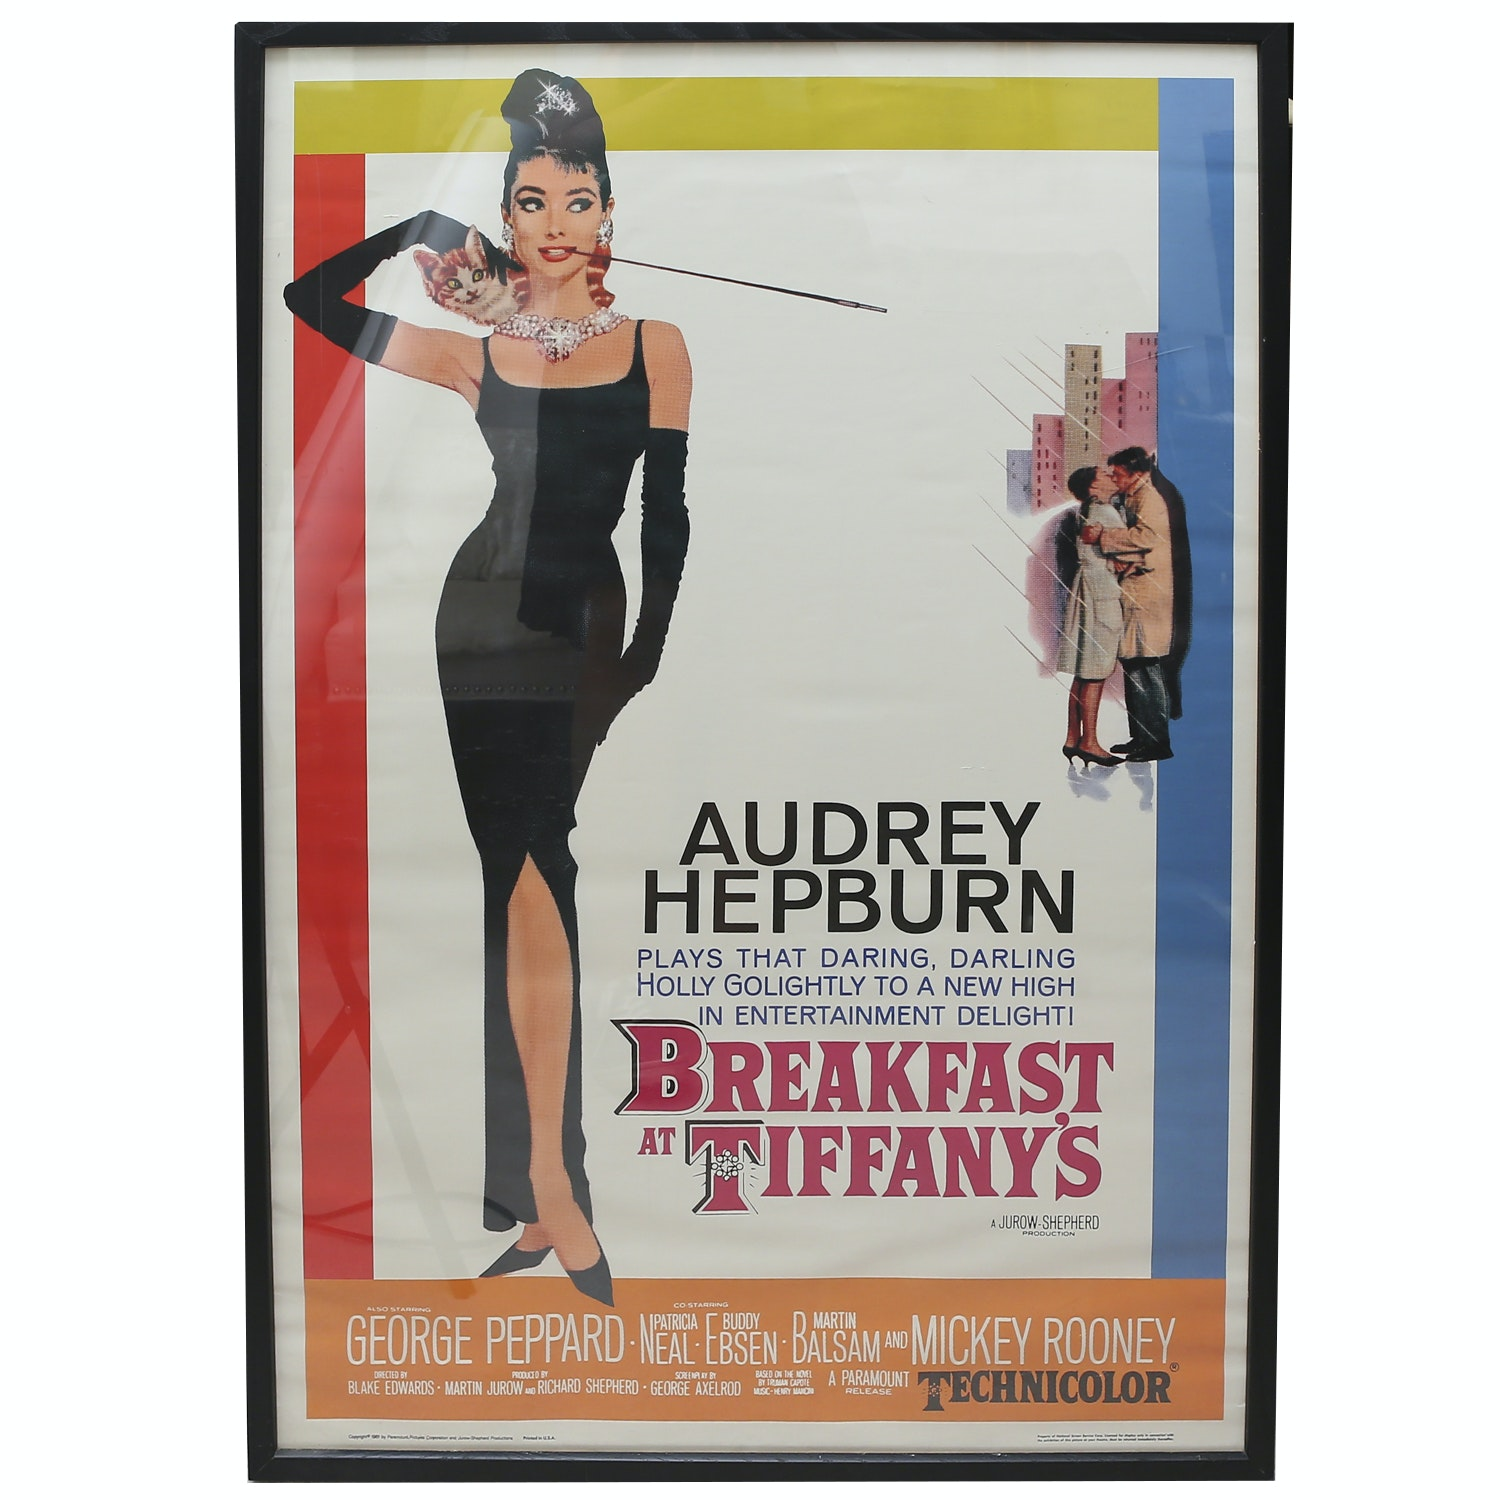 Vintage Movie Poster for Breakfast at Tiffany's